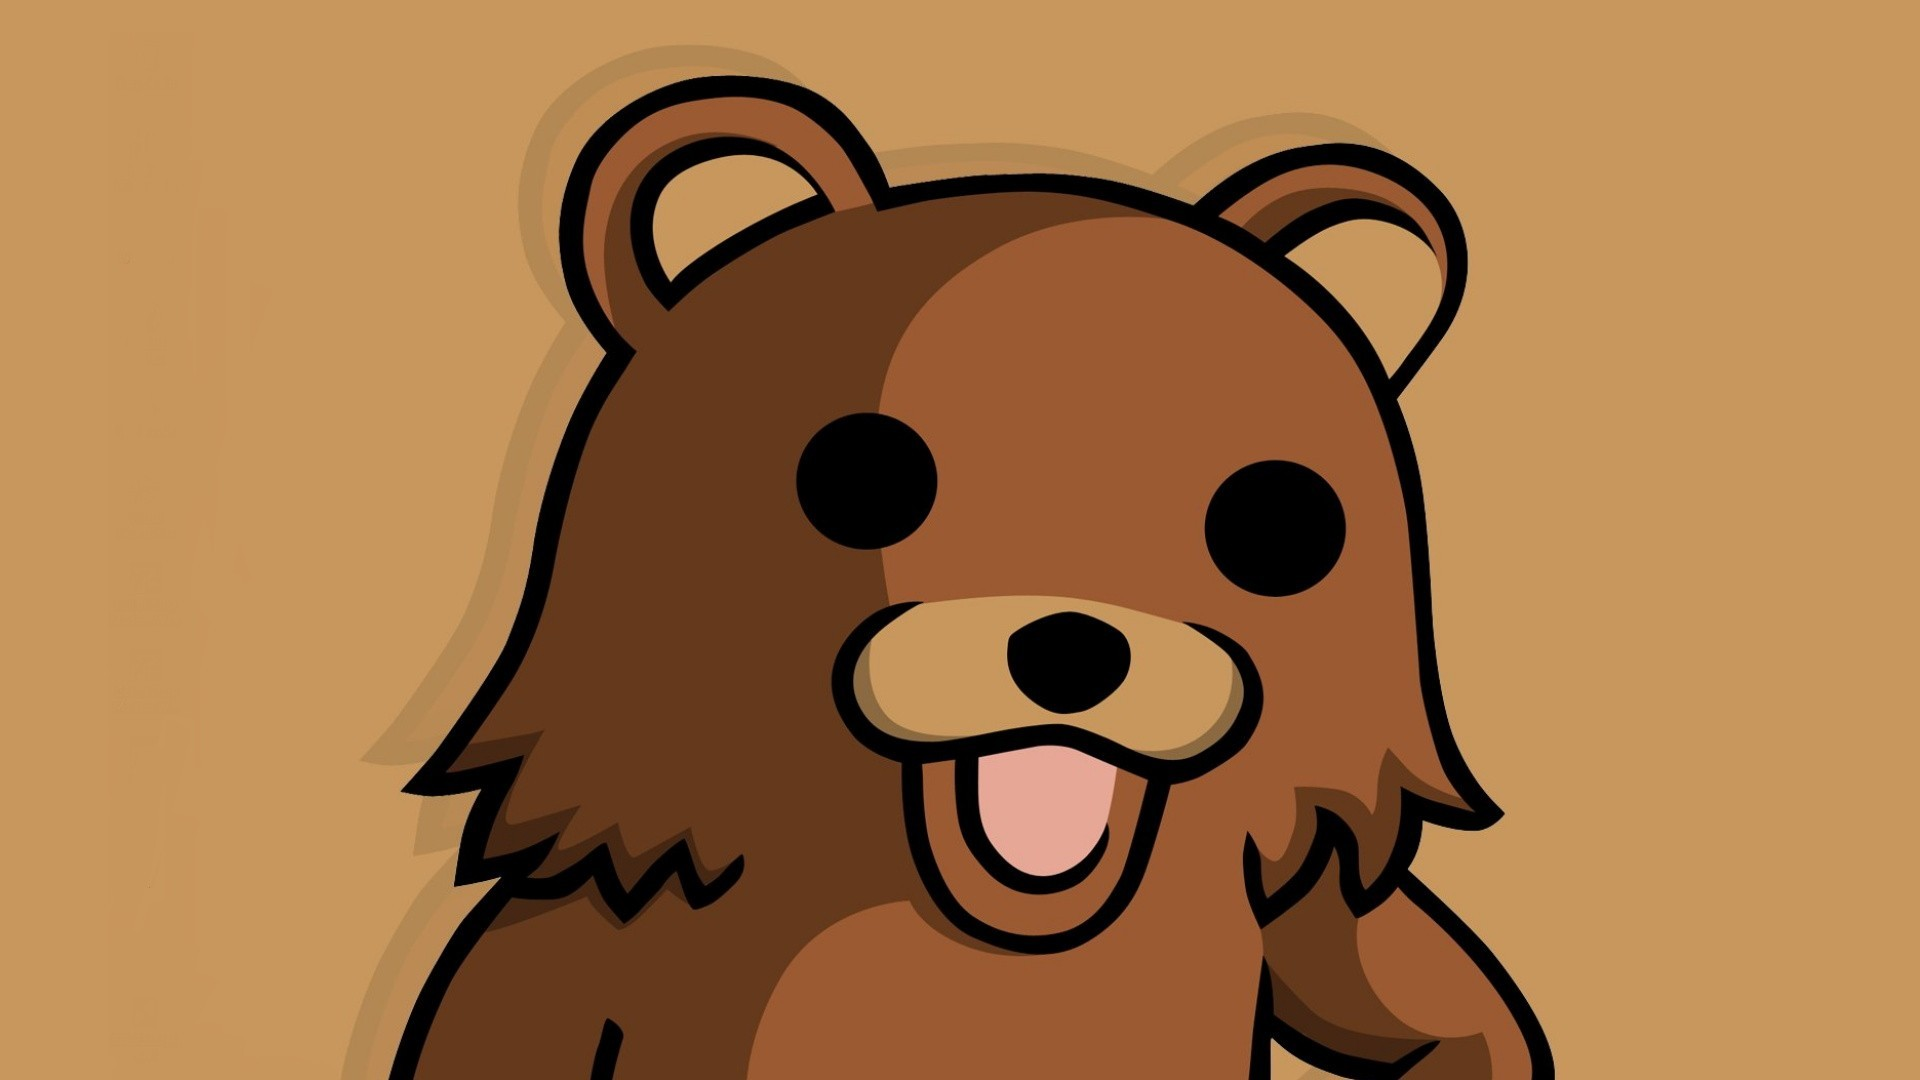 Pedobear brown meme fun HD Wallpaper